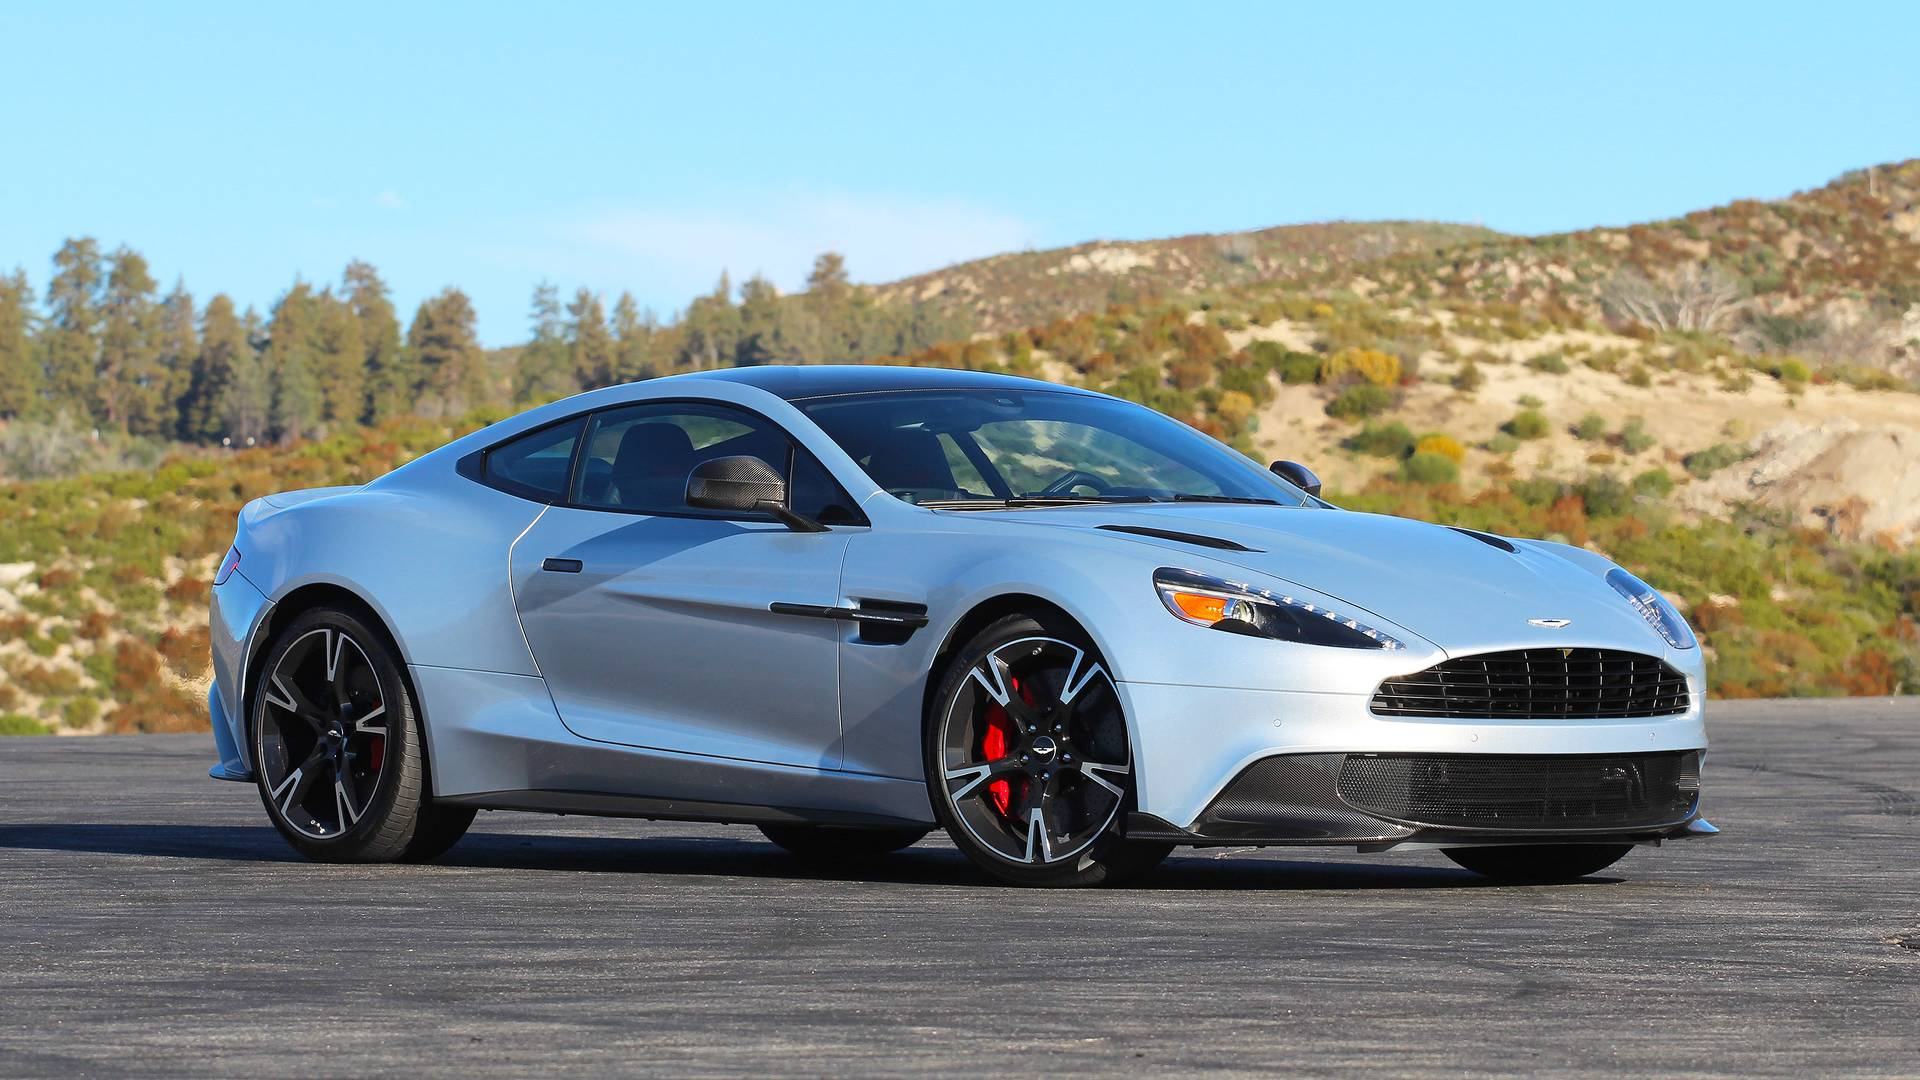 Aston Martin Vanquish S Coupe Review Going Out With A Bang - Aston martin vanquish gt price